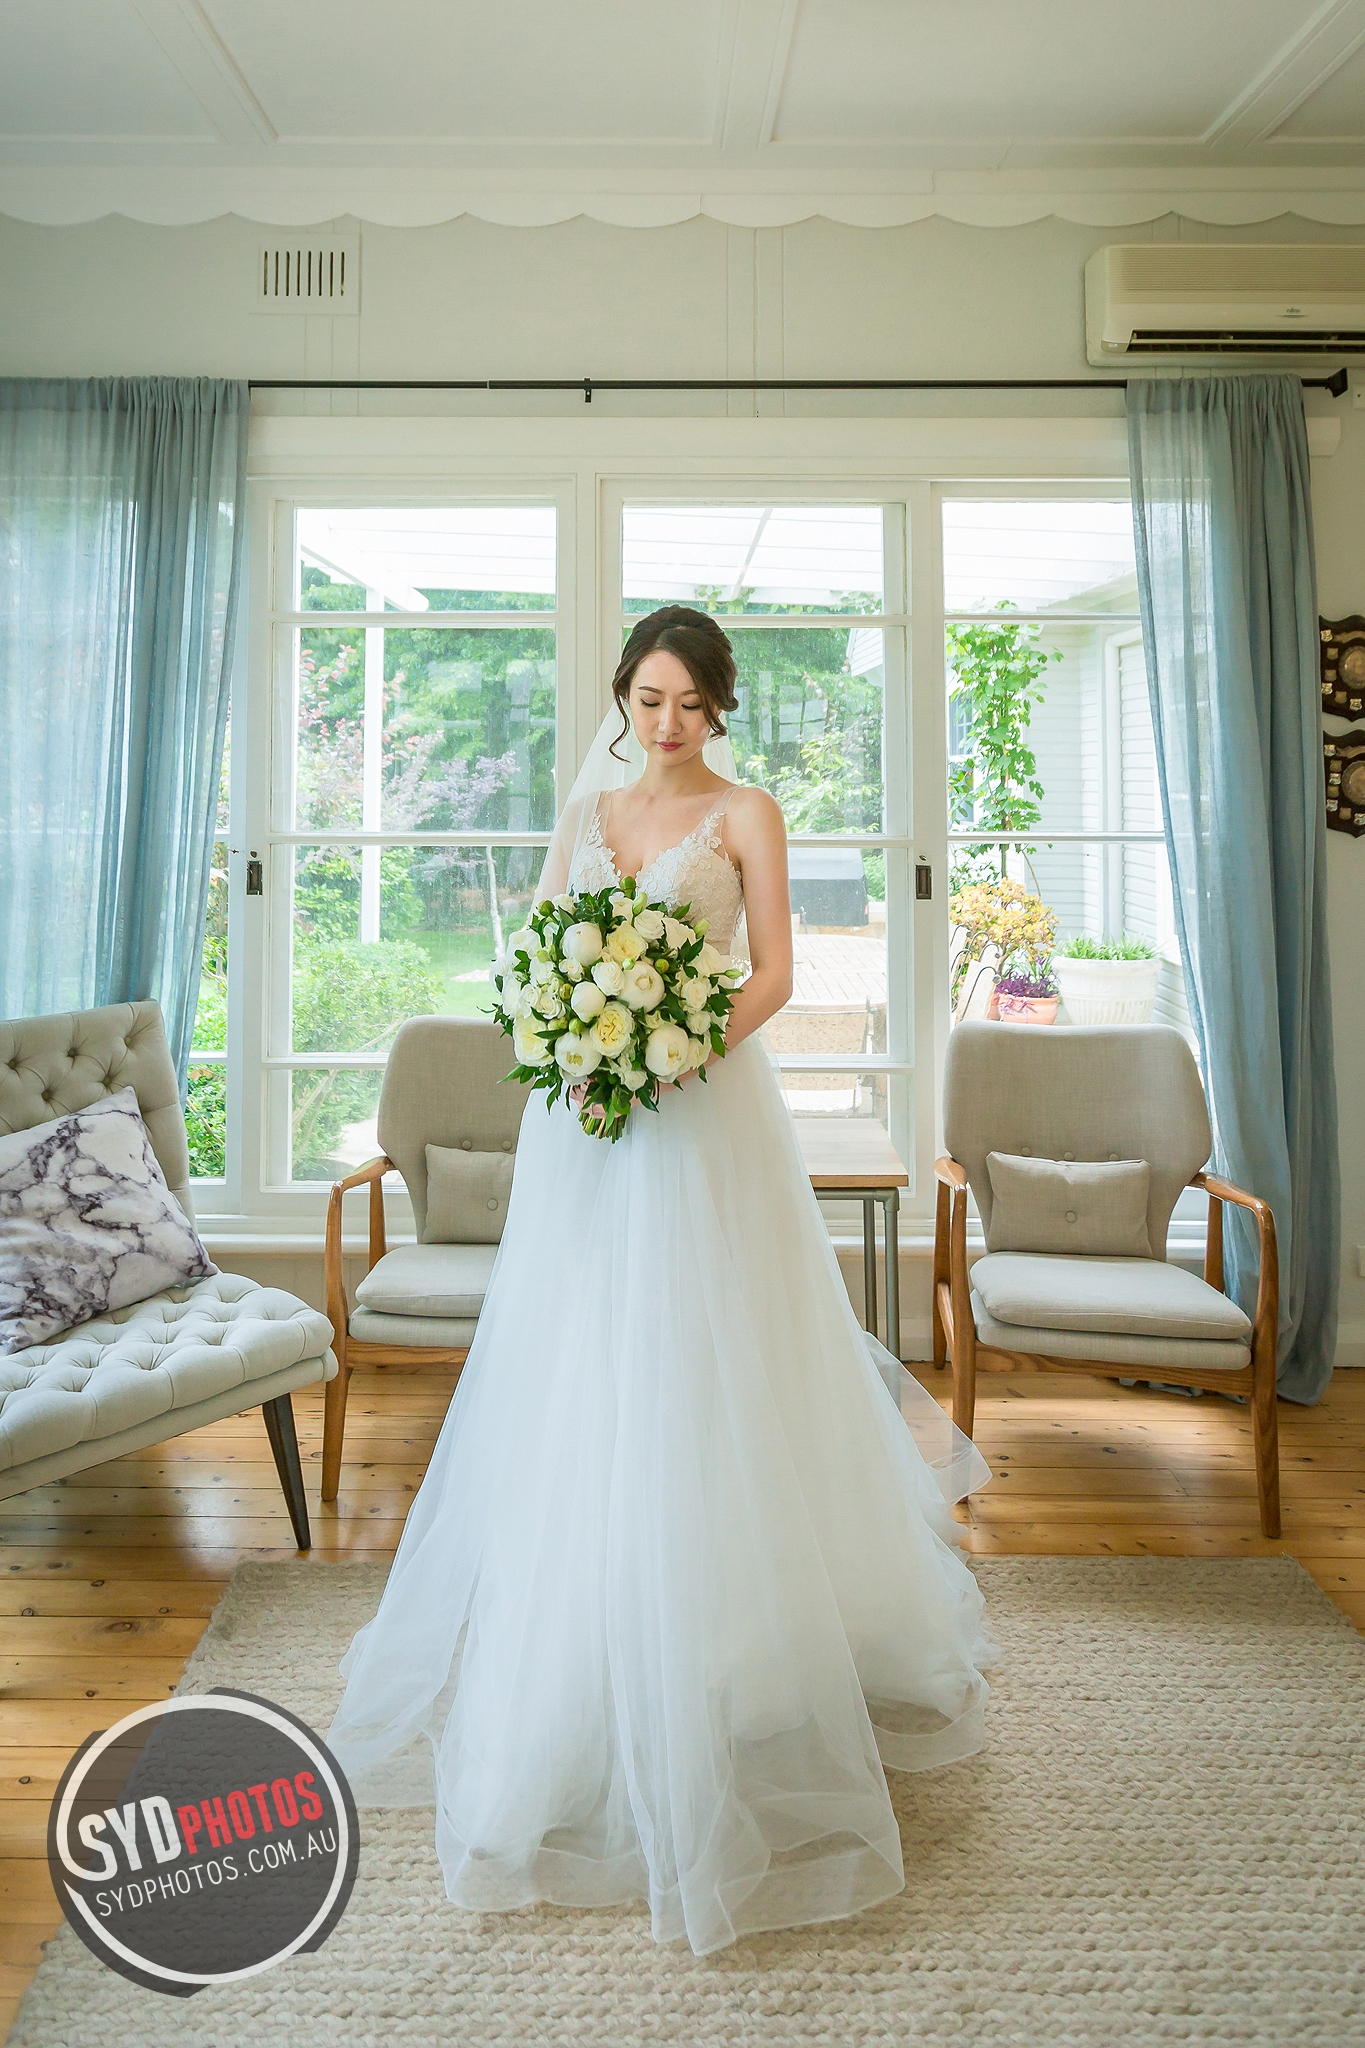 ID-87323-20171124-Jennifer-wedding-101.jpg, By Photographer Sydphotos.wedding, Created on 16 Jul 2018, SYDPHOTOS Photography all rights reserved.